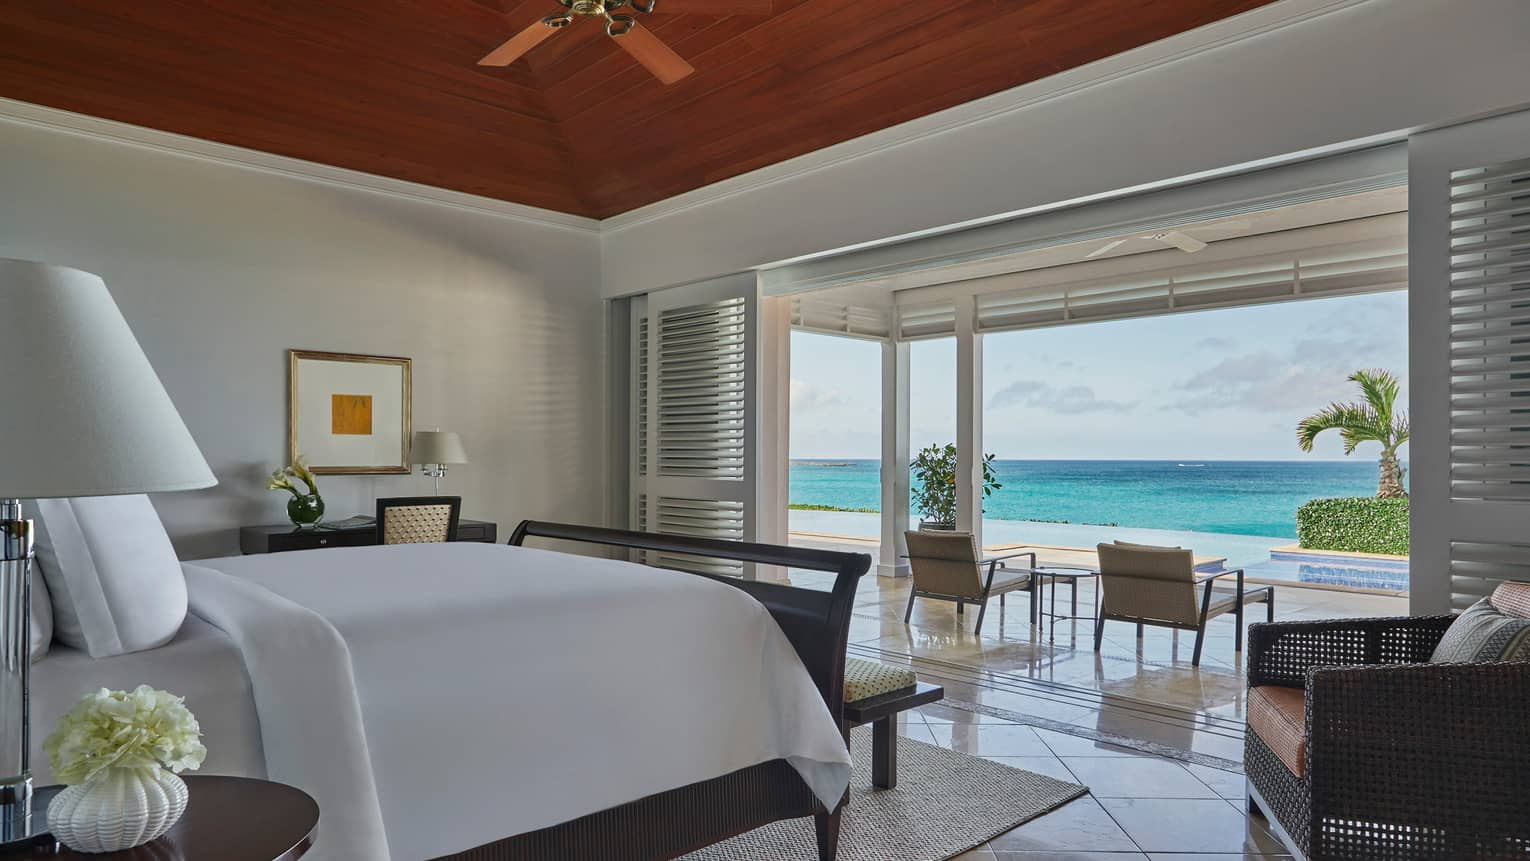 Hotel bed across from open wall to patio overlooking white sand beach, oceanfront